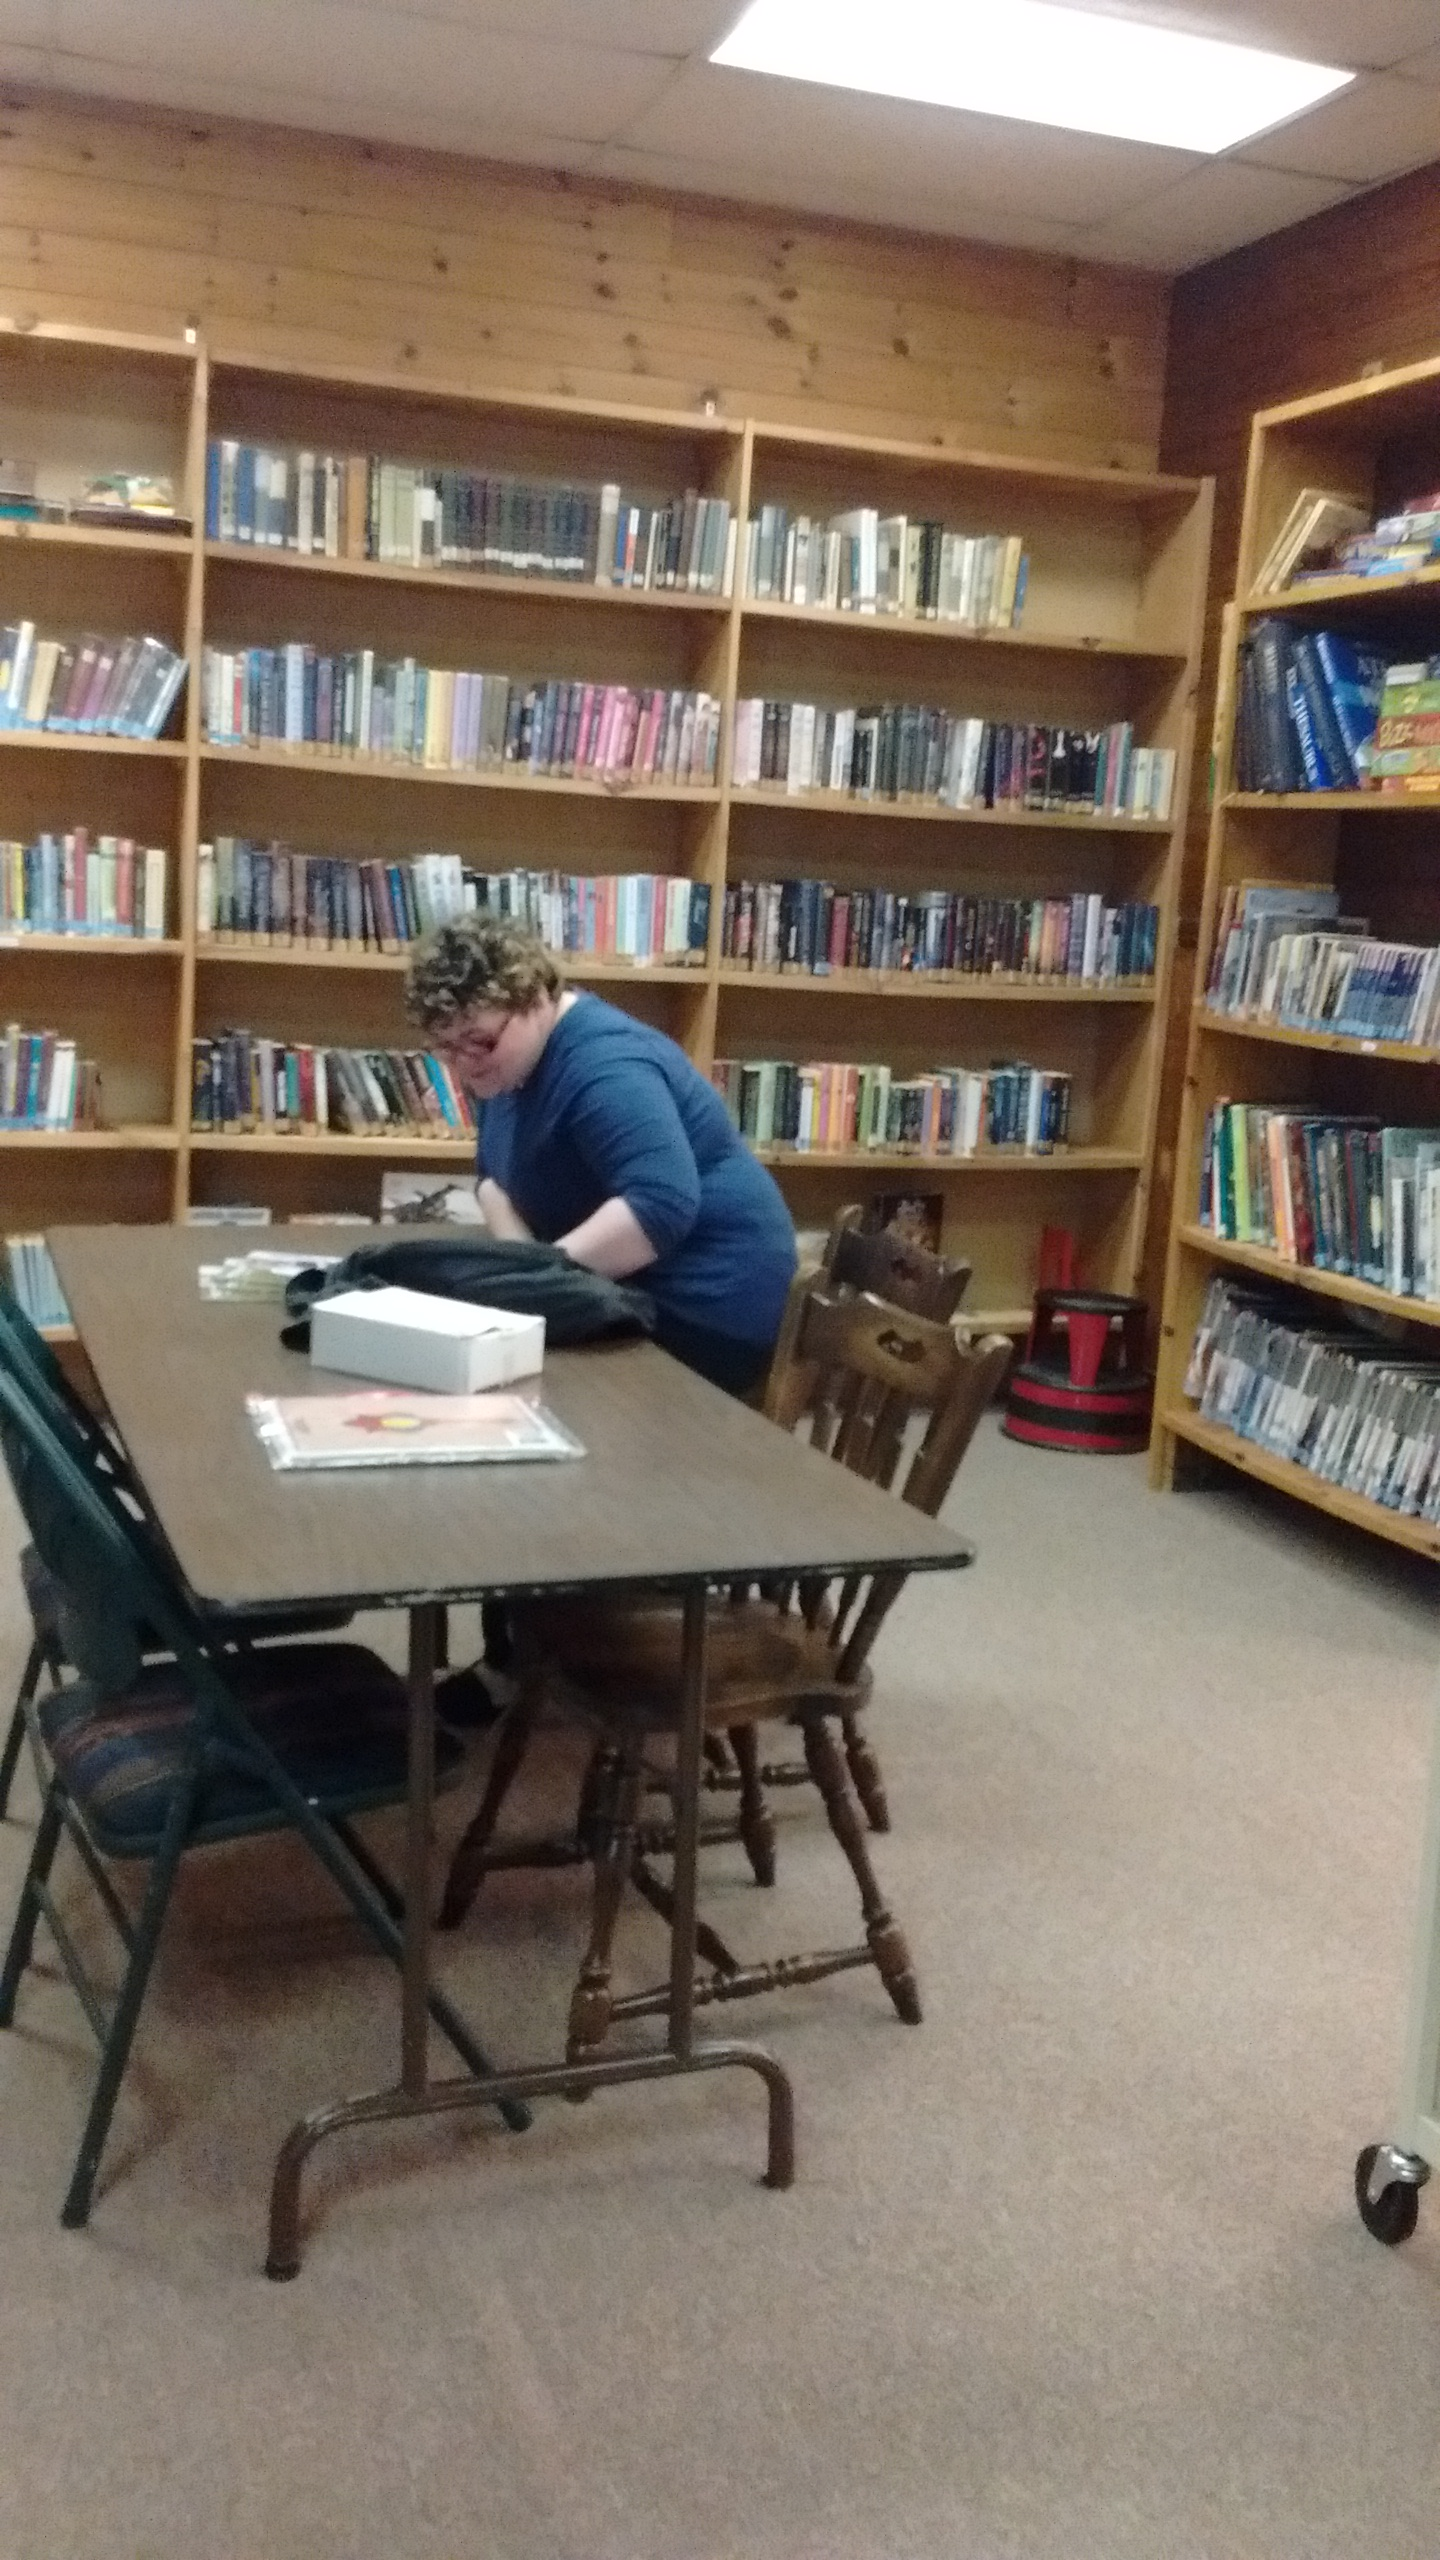 Working in the Library